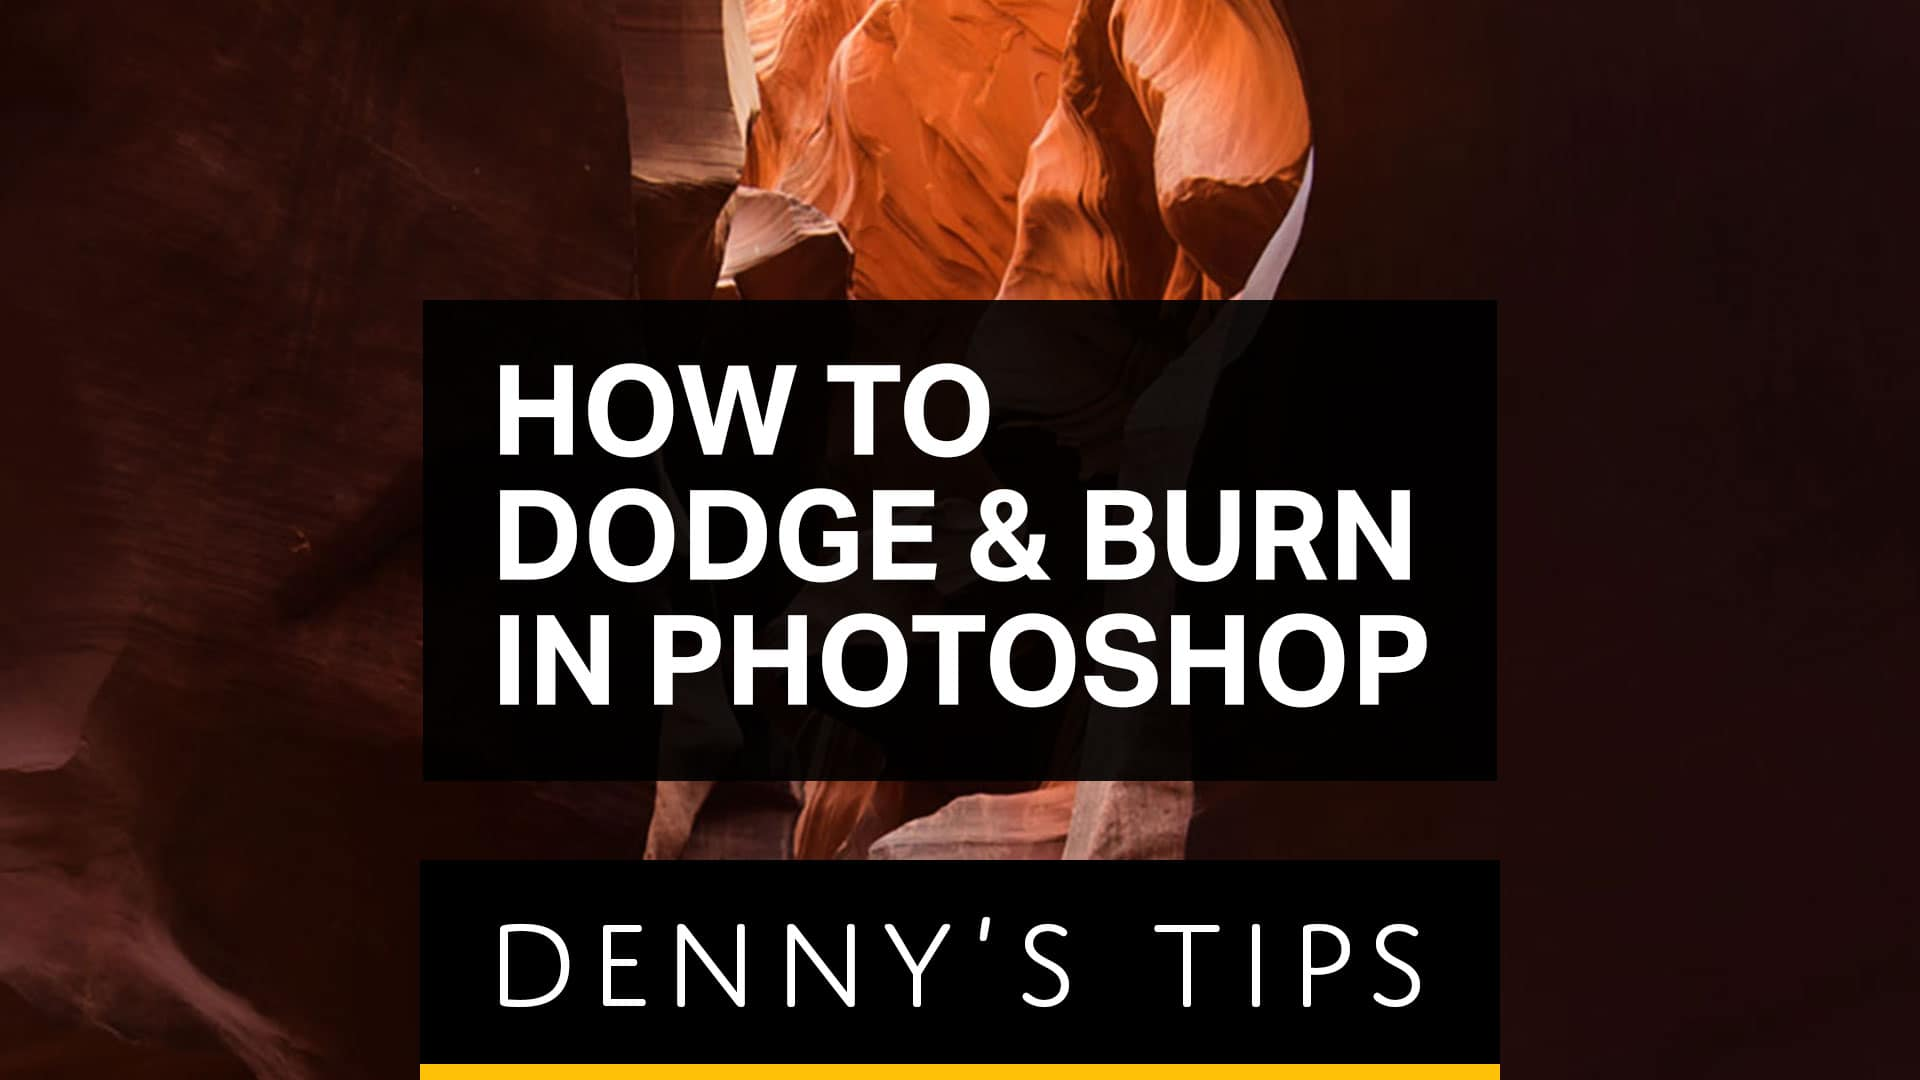 Guide to Dodging and Burning Nondestructively in Photoshop